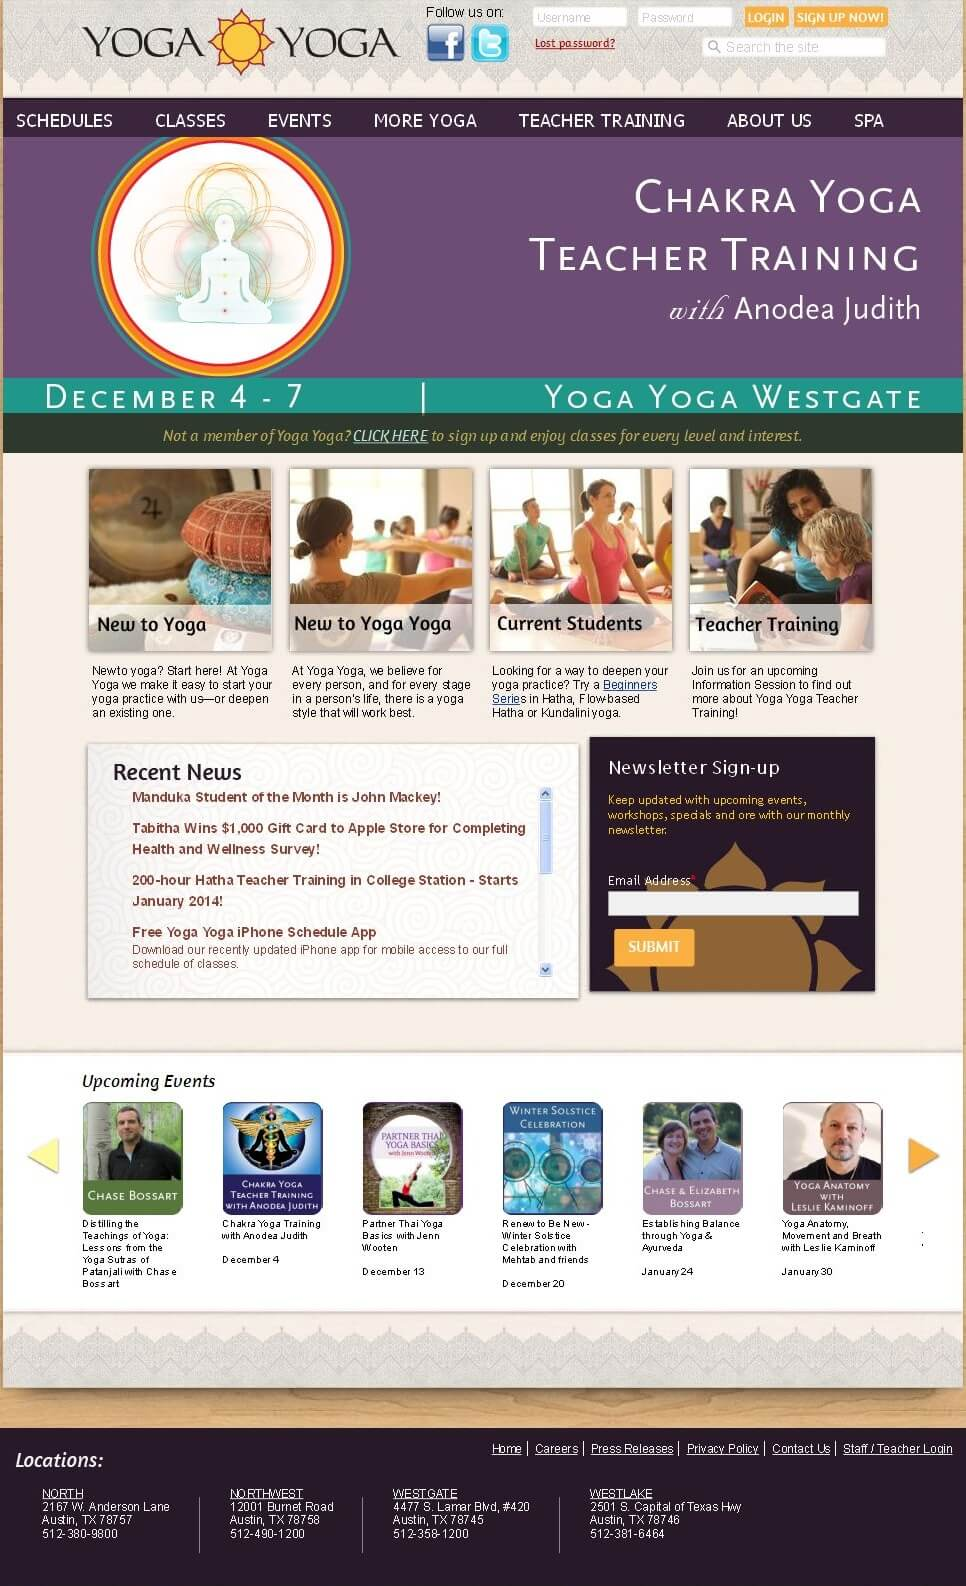 A Drupal Powered Website for Yoga Teacher Training